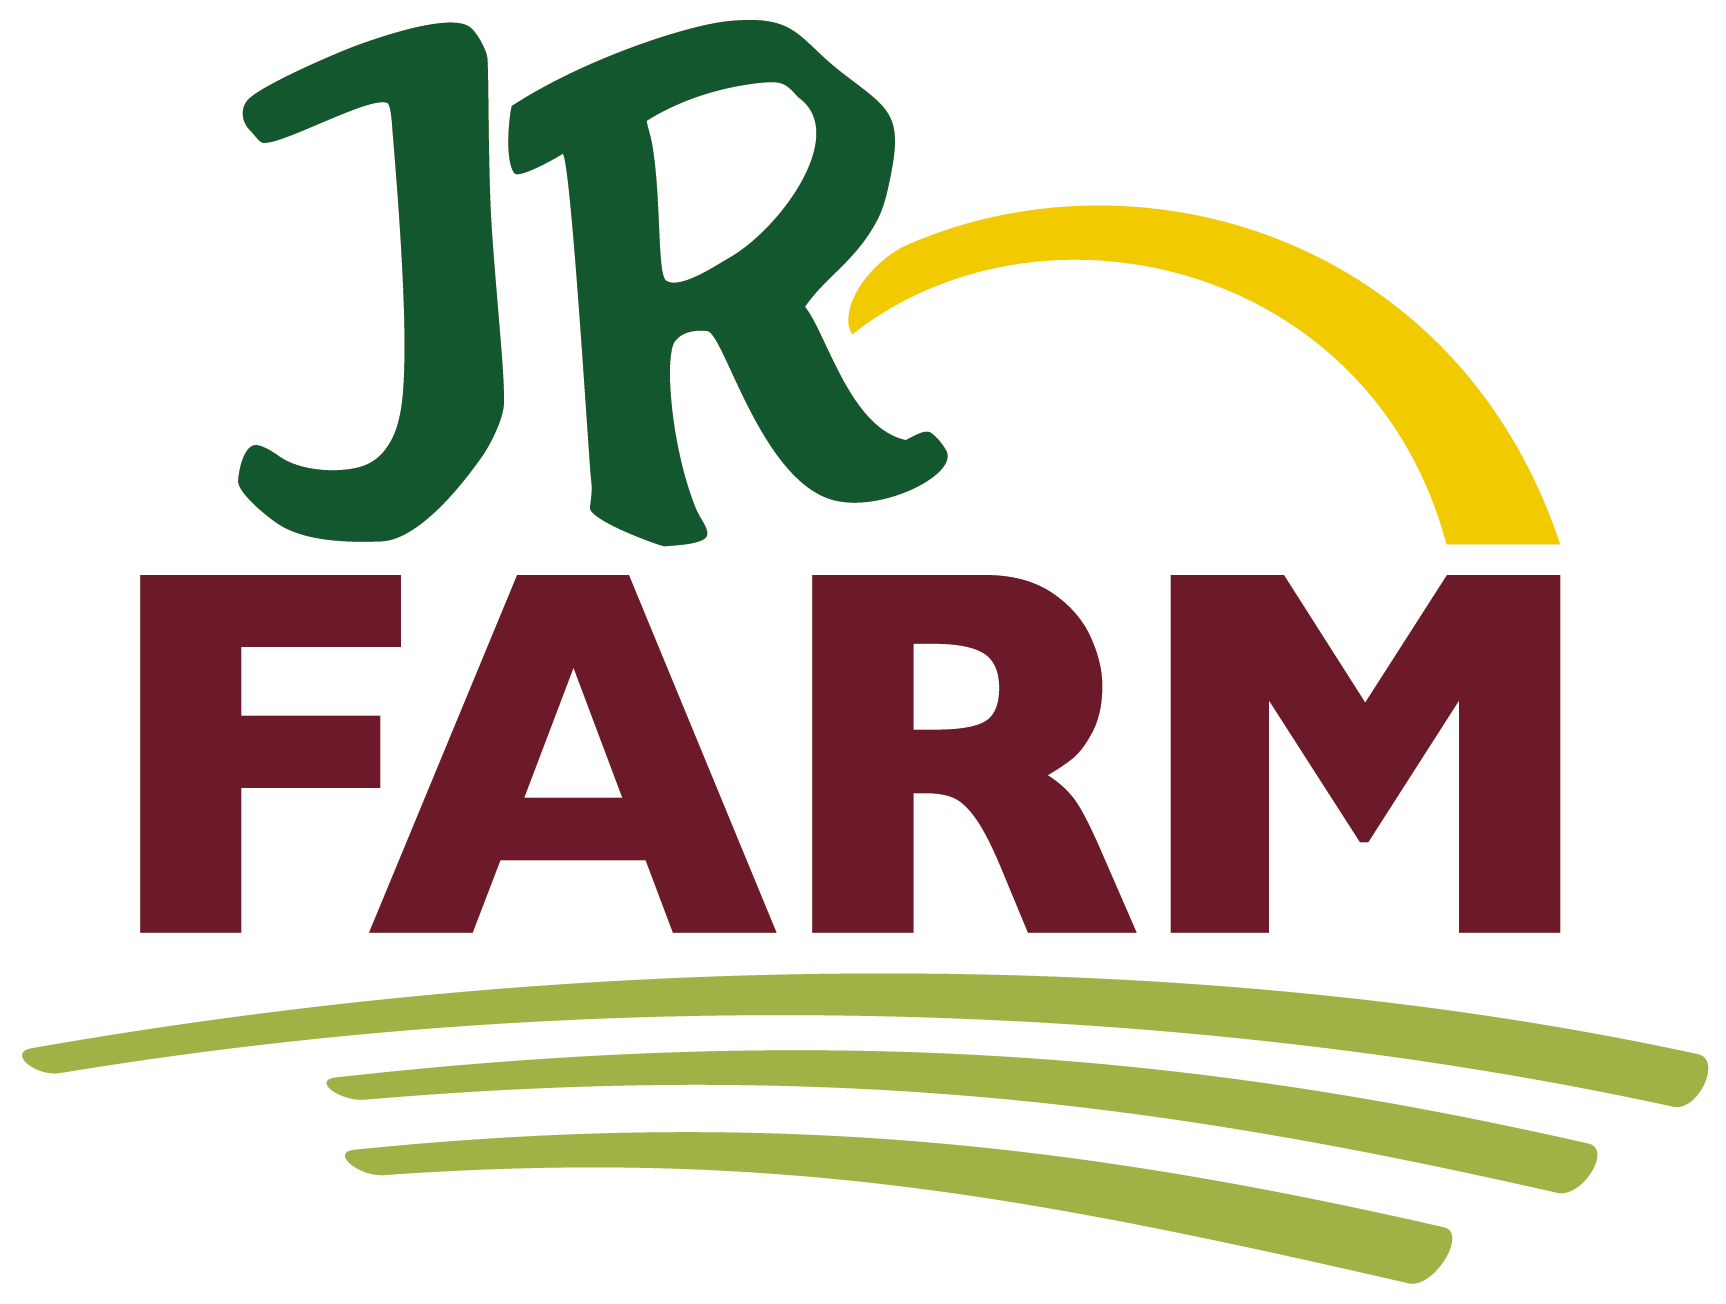 JR FARM GMBH